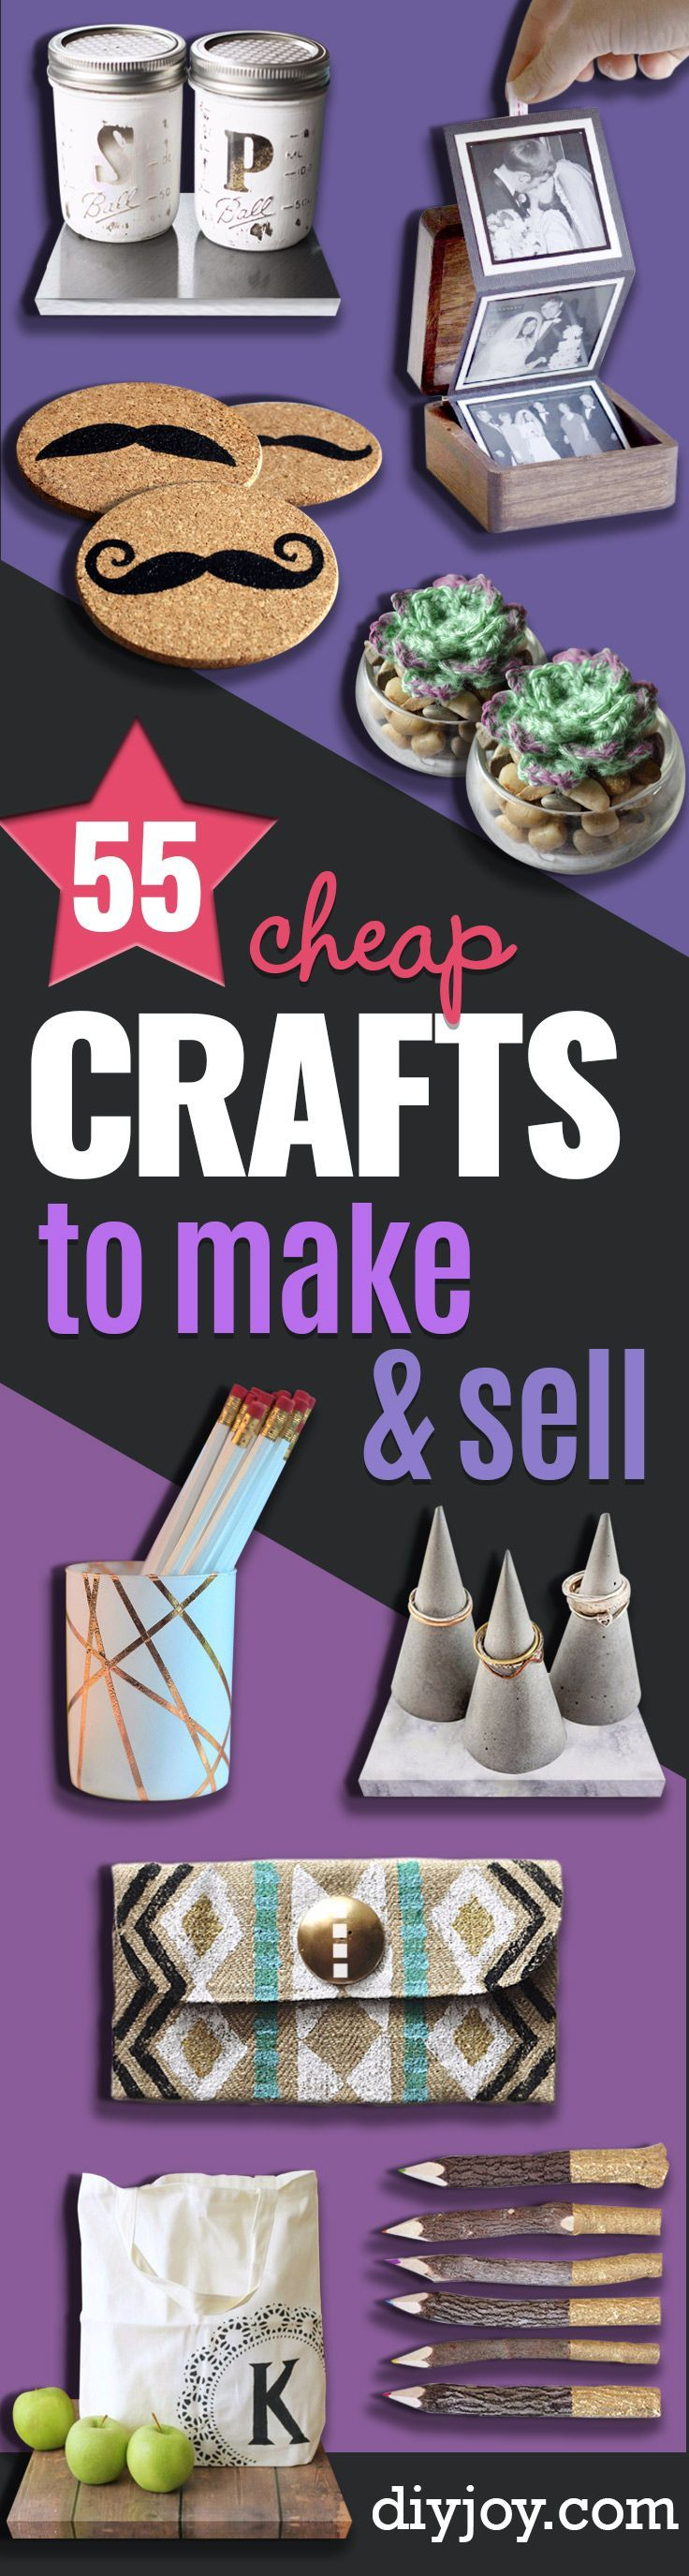 55 cheap crafts to make and sell diy and crafts for How do i sell my crafts online